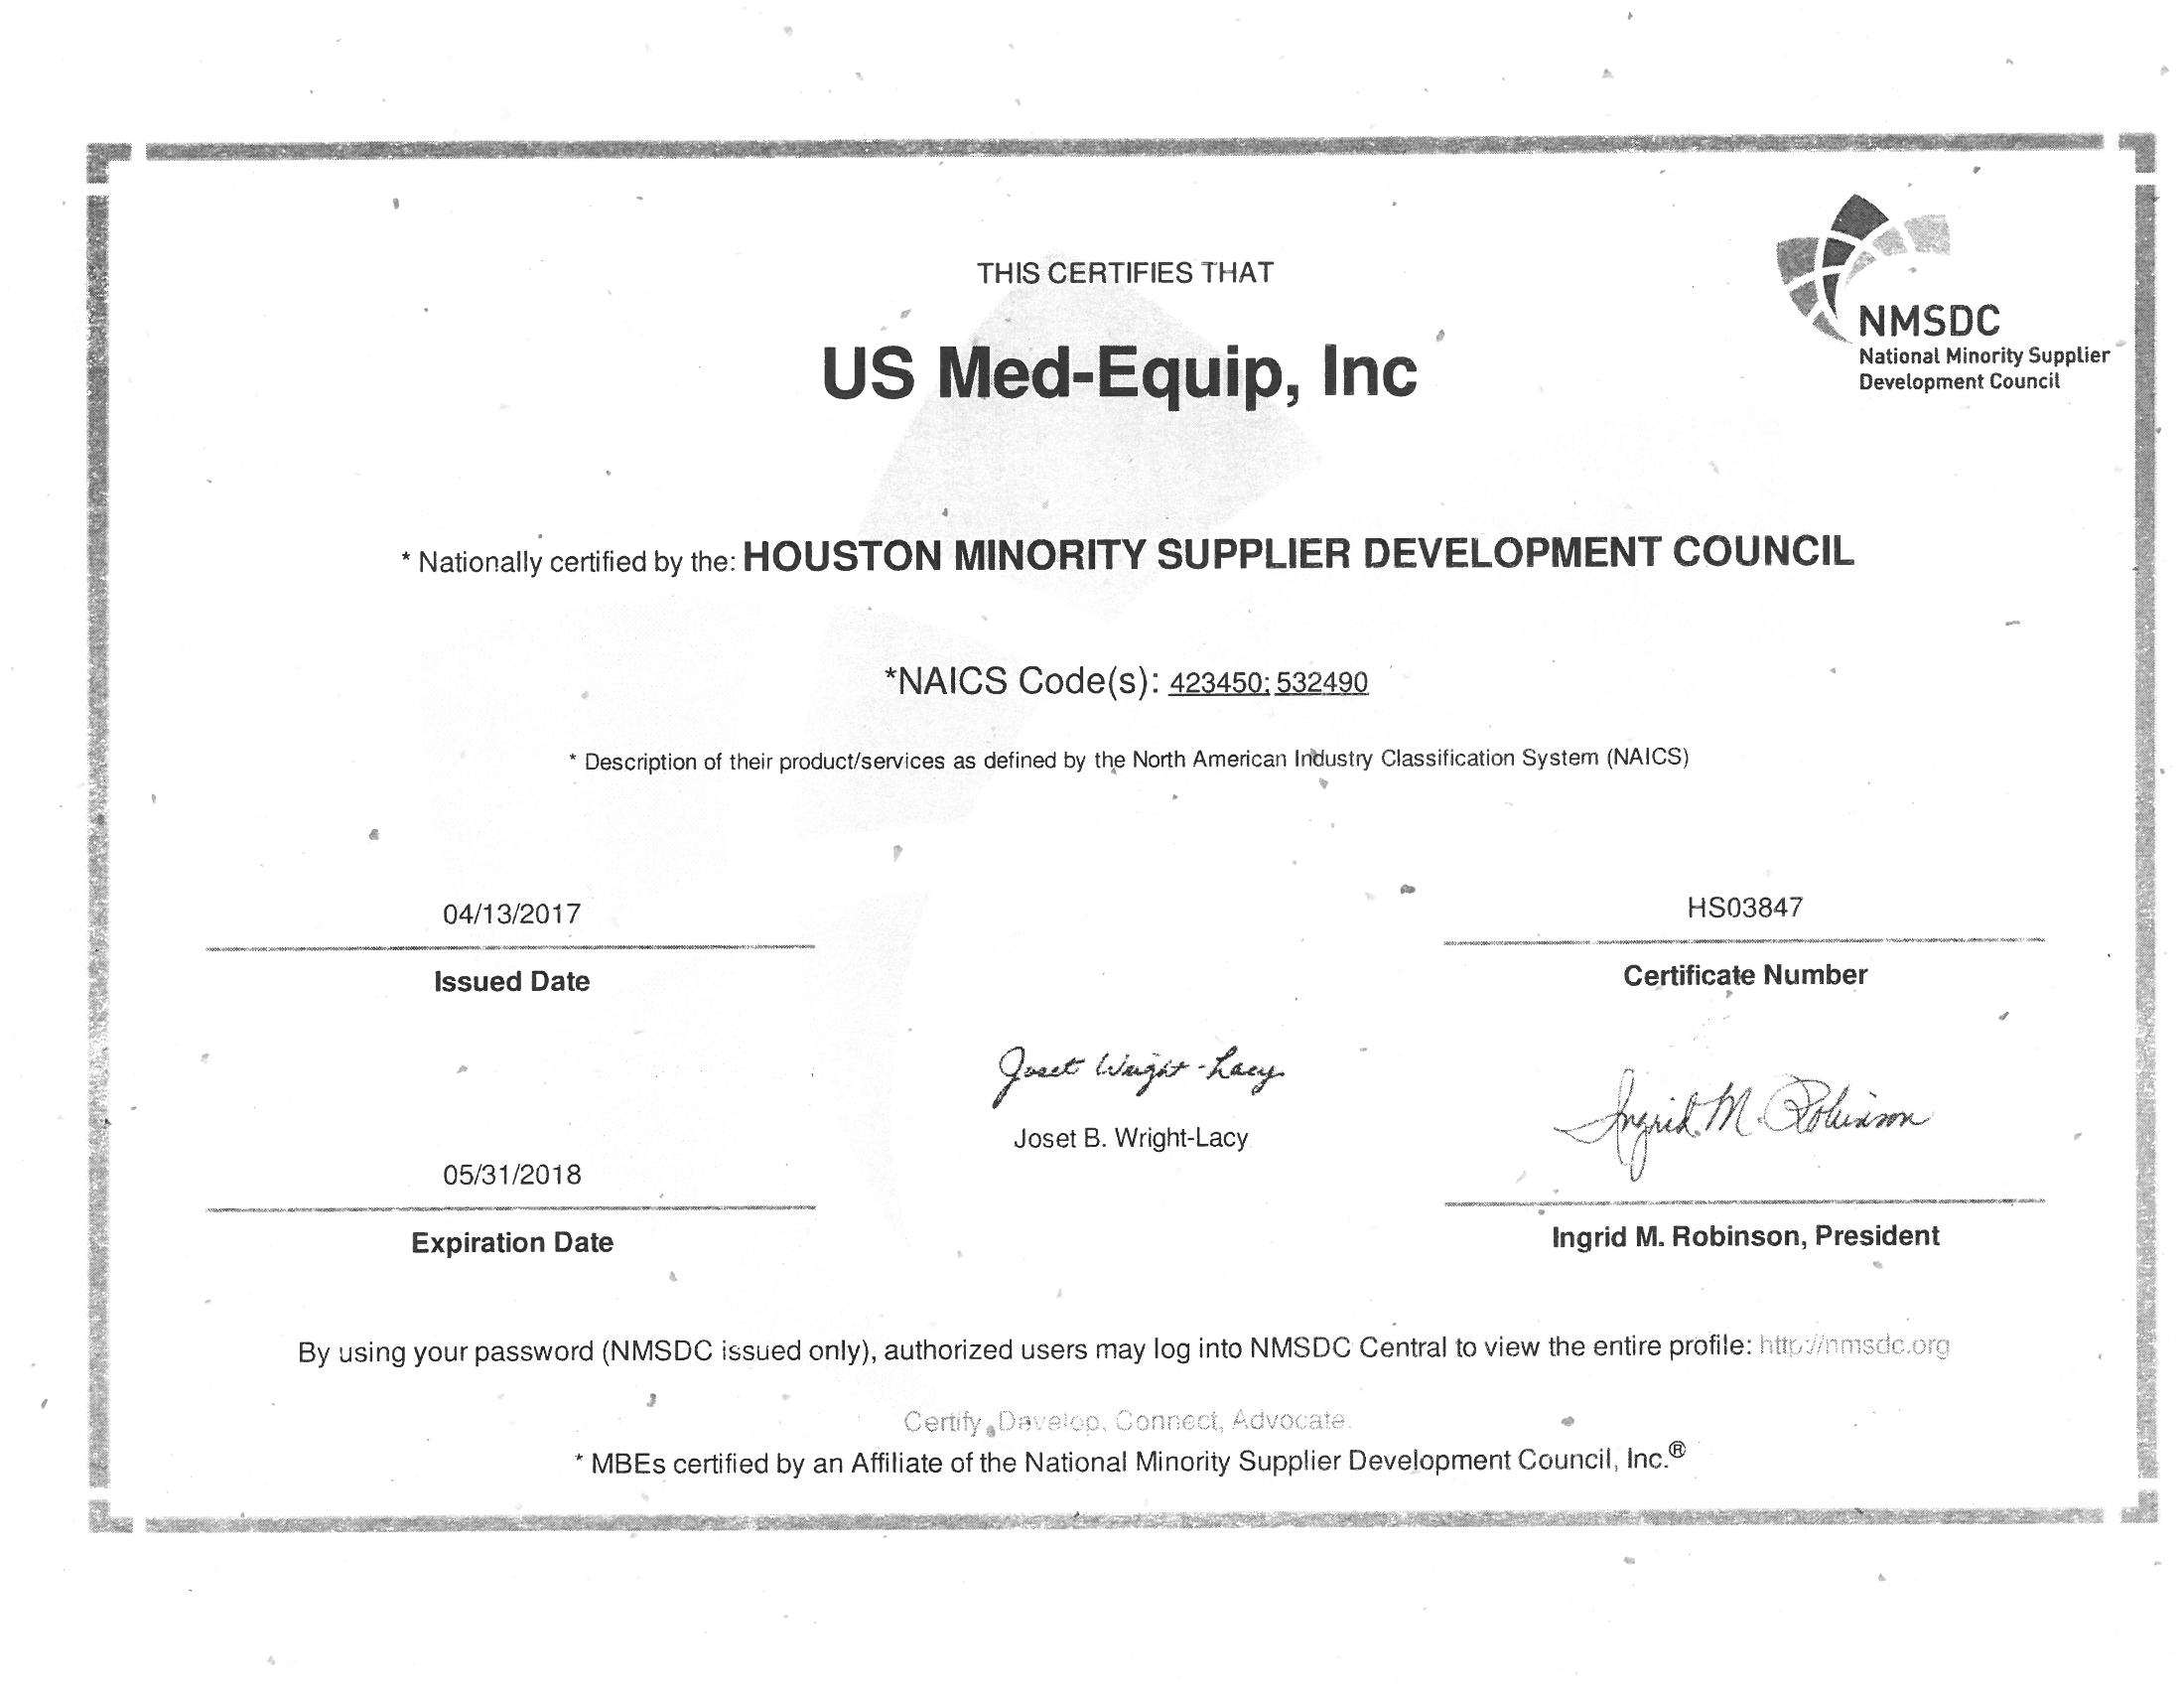 Diversity us med equipus med equip development council as well as being a certified texas historically underutilized business hub allows us to create an environment for employees 1betcityfo Choice Image